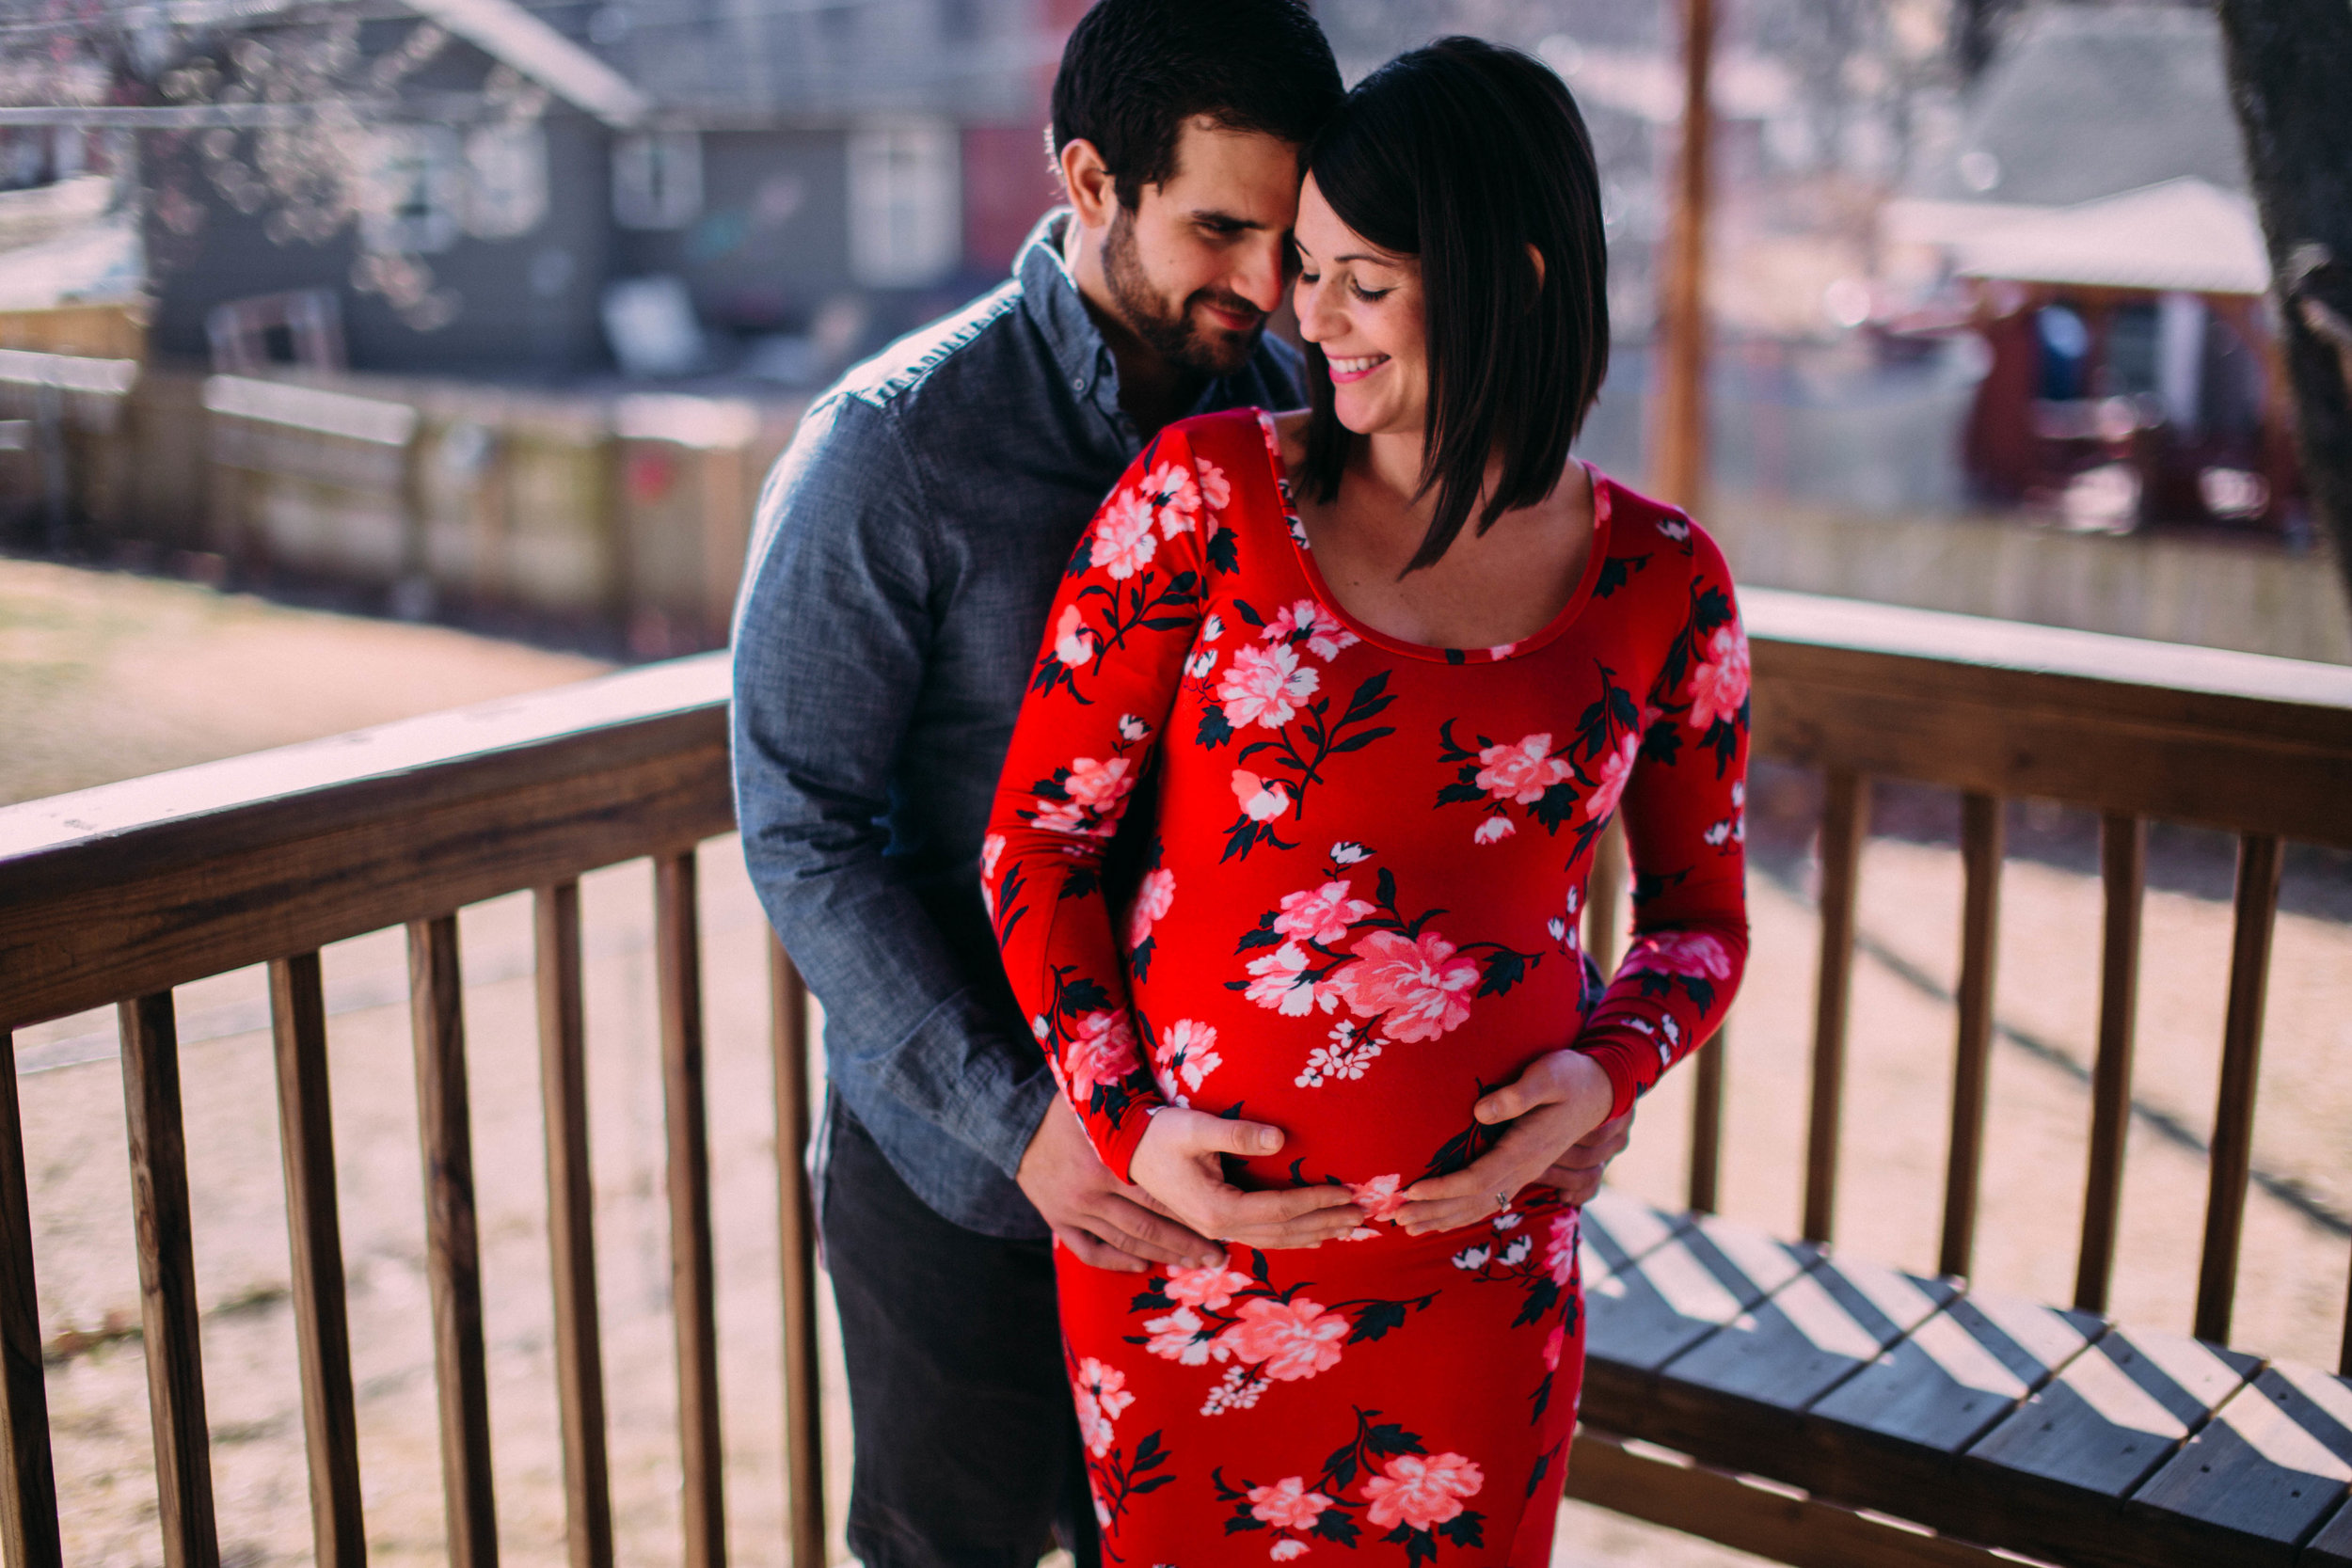 Claire & Brandon : Baby-moon Session | Lifestyle Maternity | Hannahill Photography | Kansas City, MO | In home session celebrating a pregnant momma and an excited dad | bright floral dress | playing catch with the pups | February Session | Baby Nursery elegant and stylish